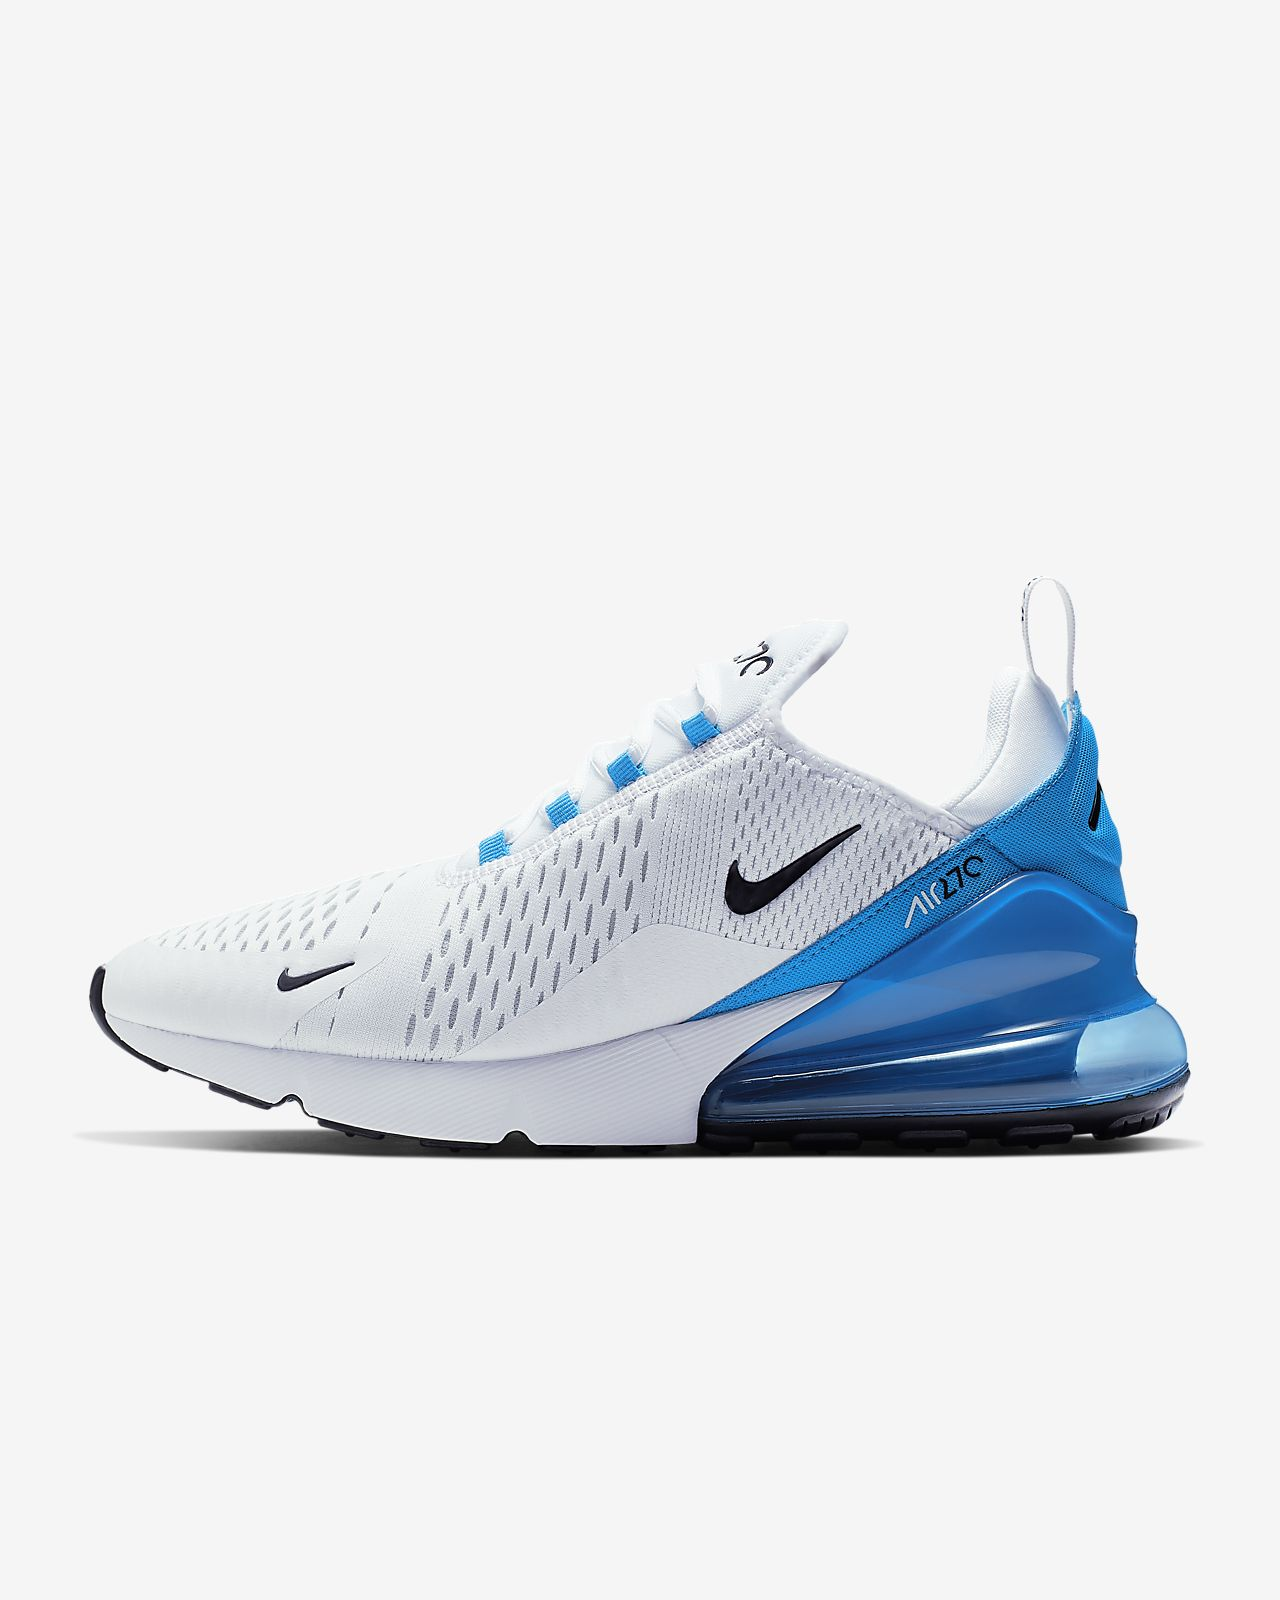 Air Max Air 270 Nike HerrenschuhDe 270 Max HerrenschuhDe Nike Nike Air Pm0wnvNOy8